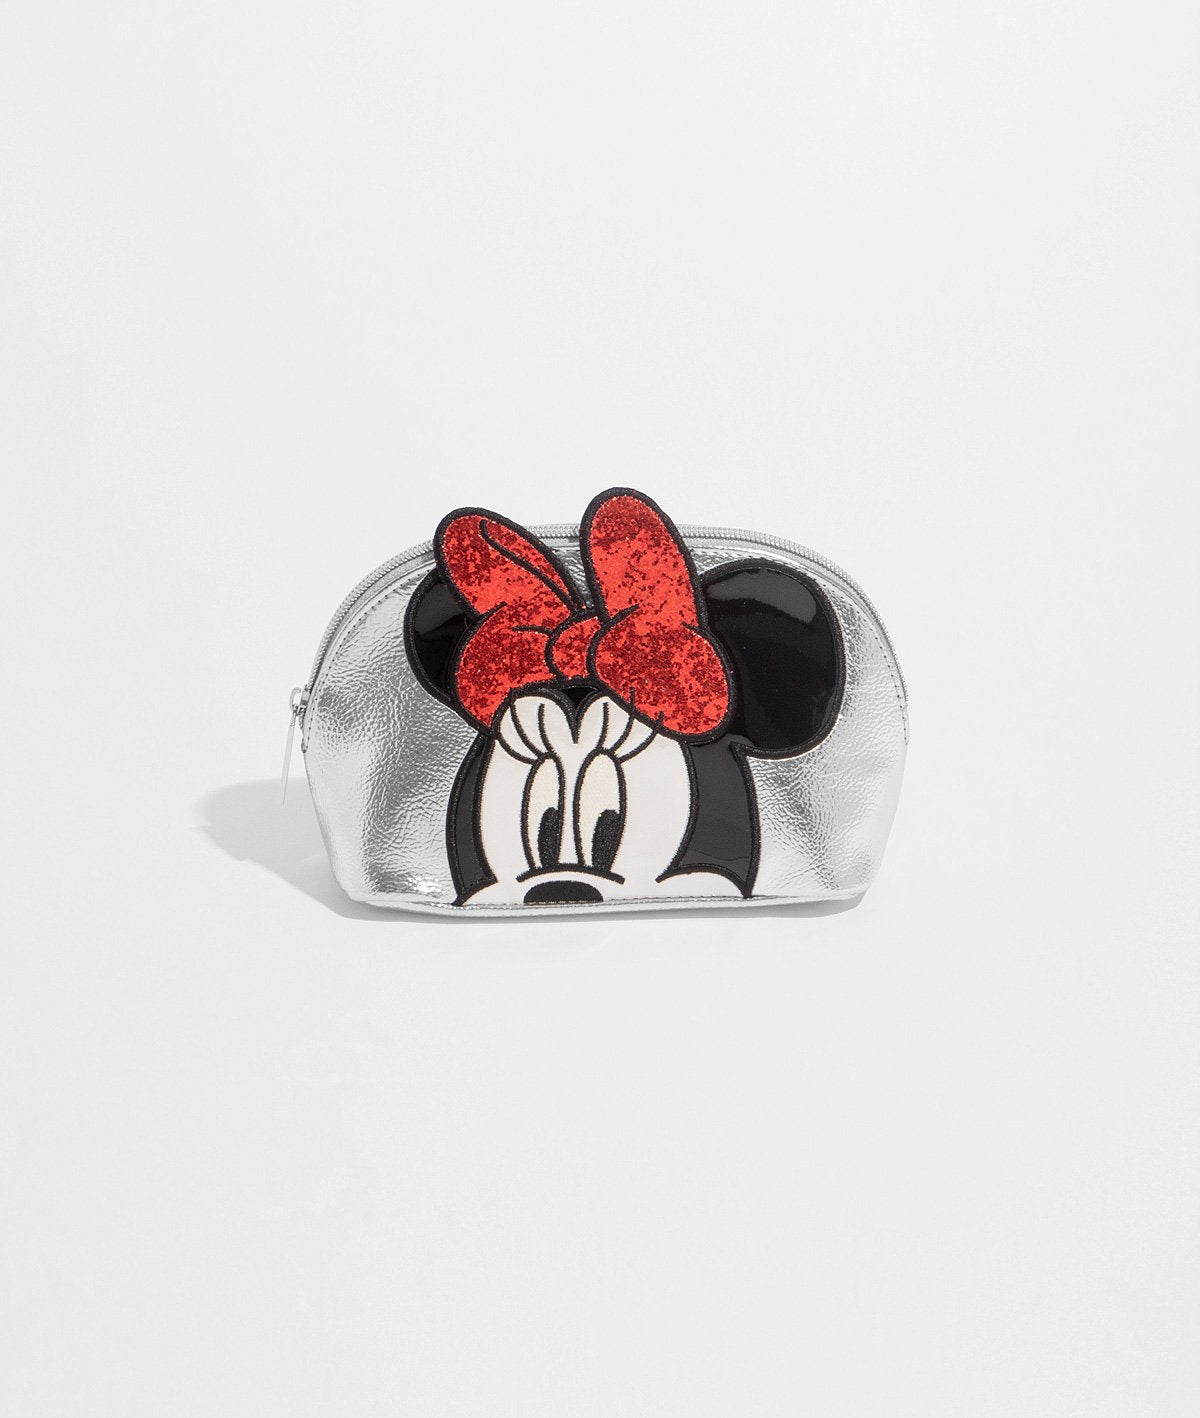 DN Minnie Mouse Cosmetic Bag